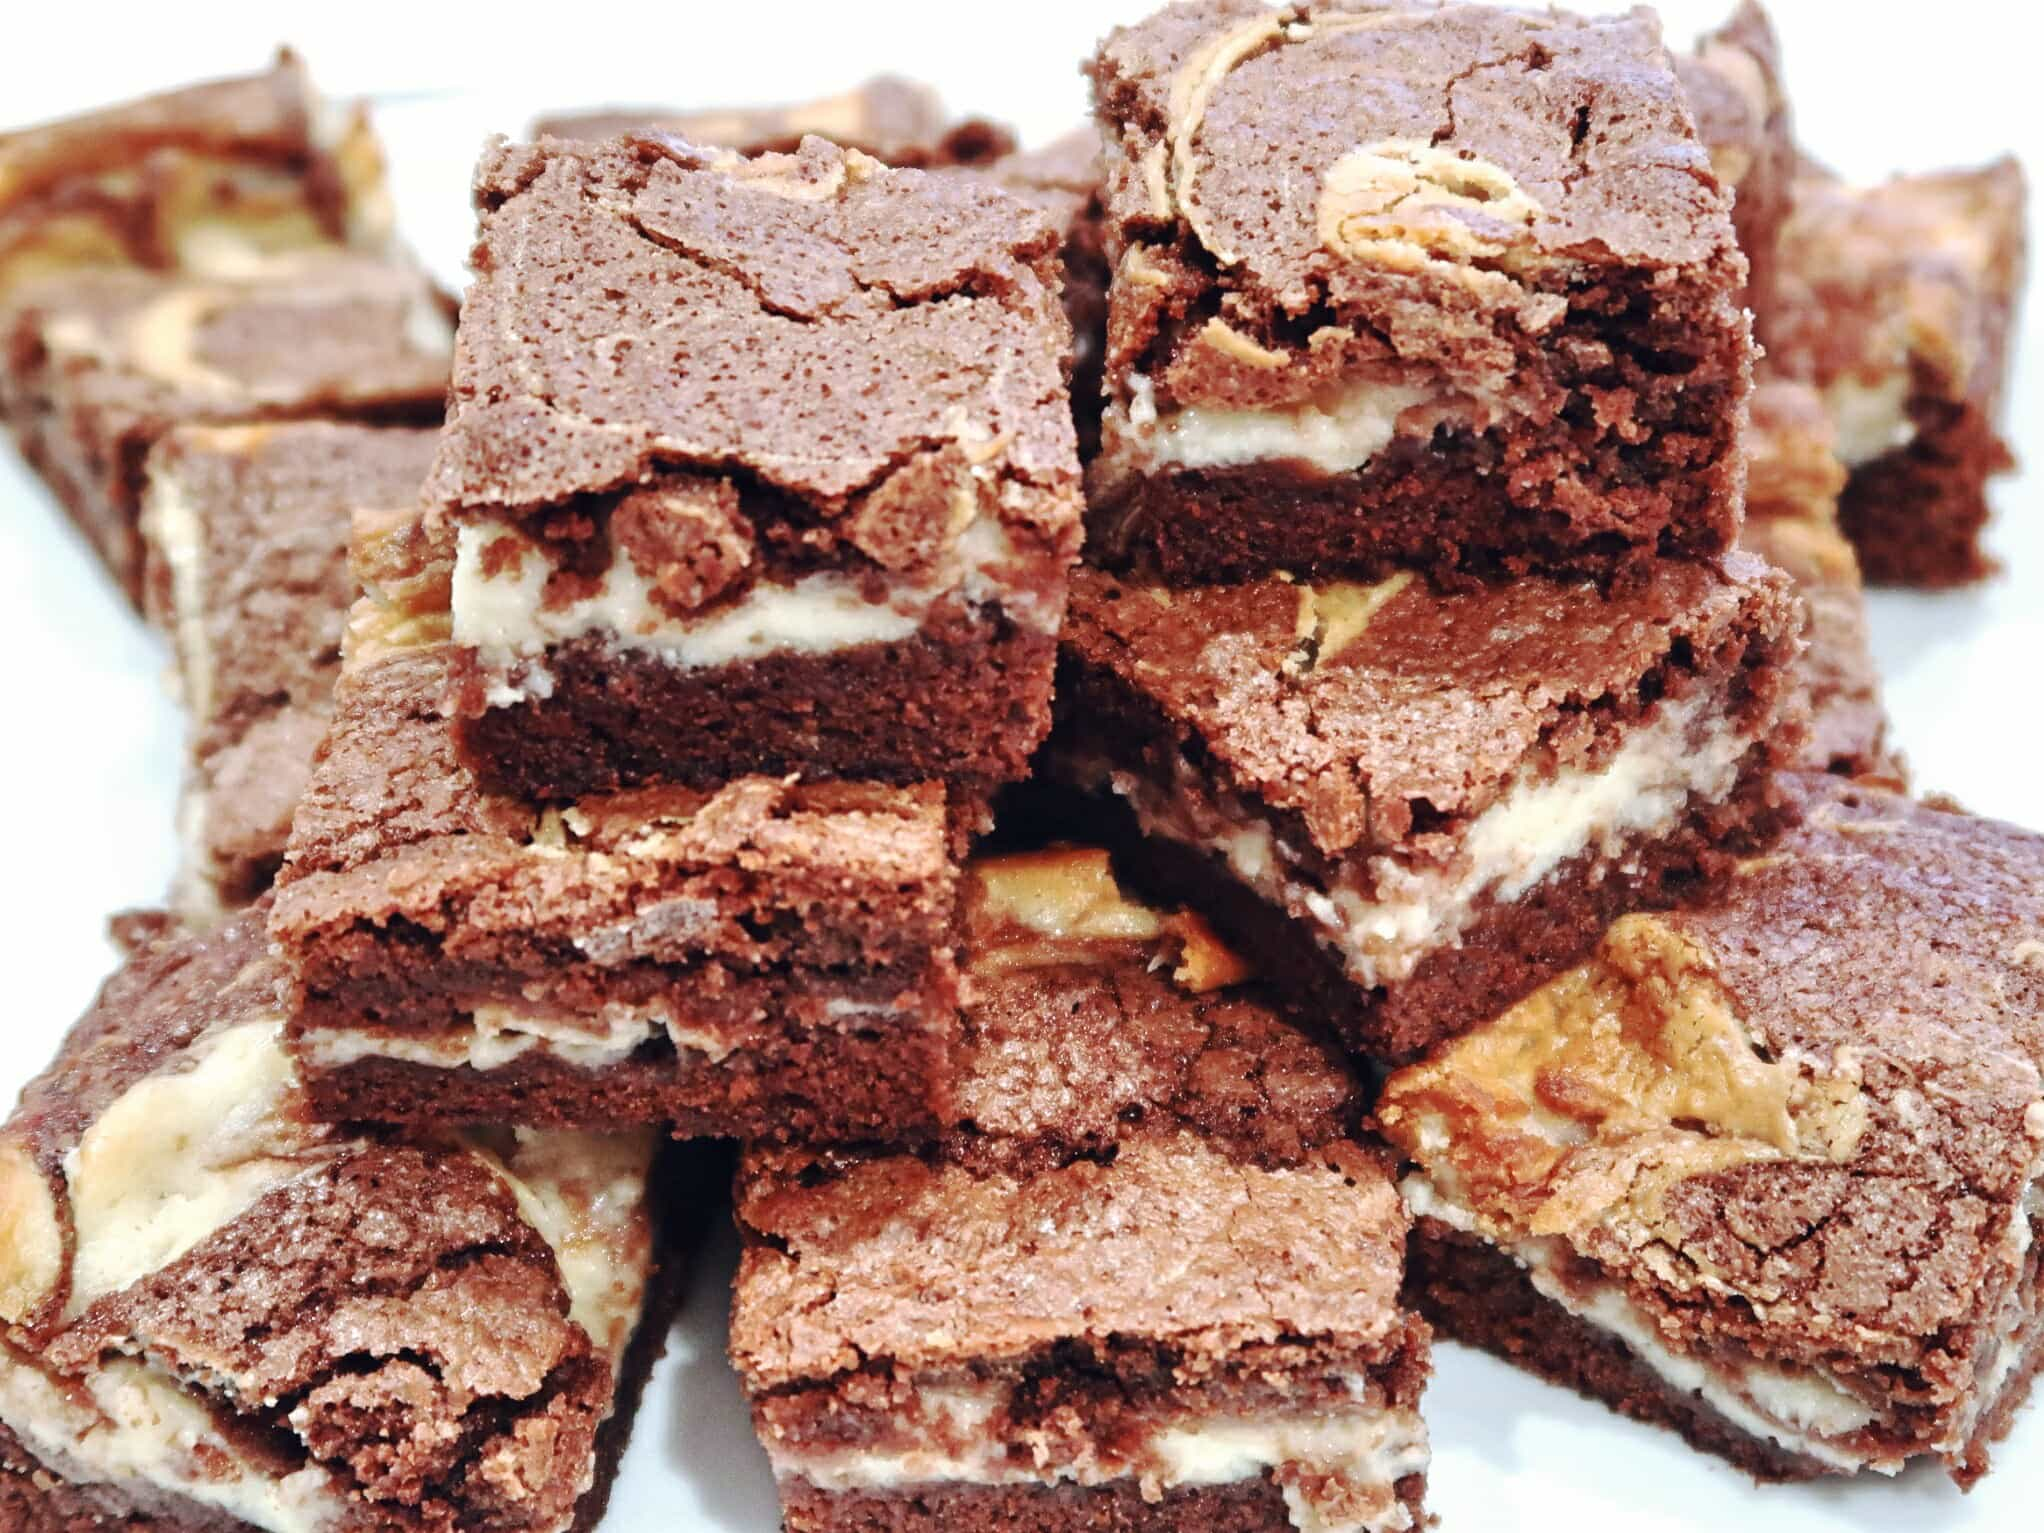 Amaretto and Mascarpone Brownies